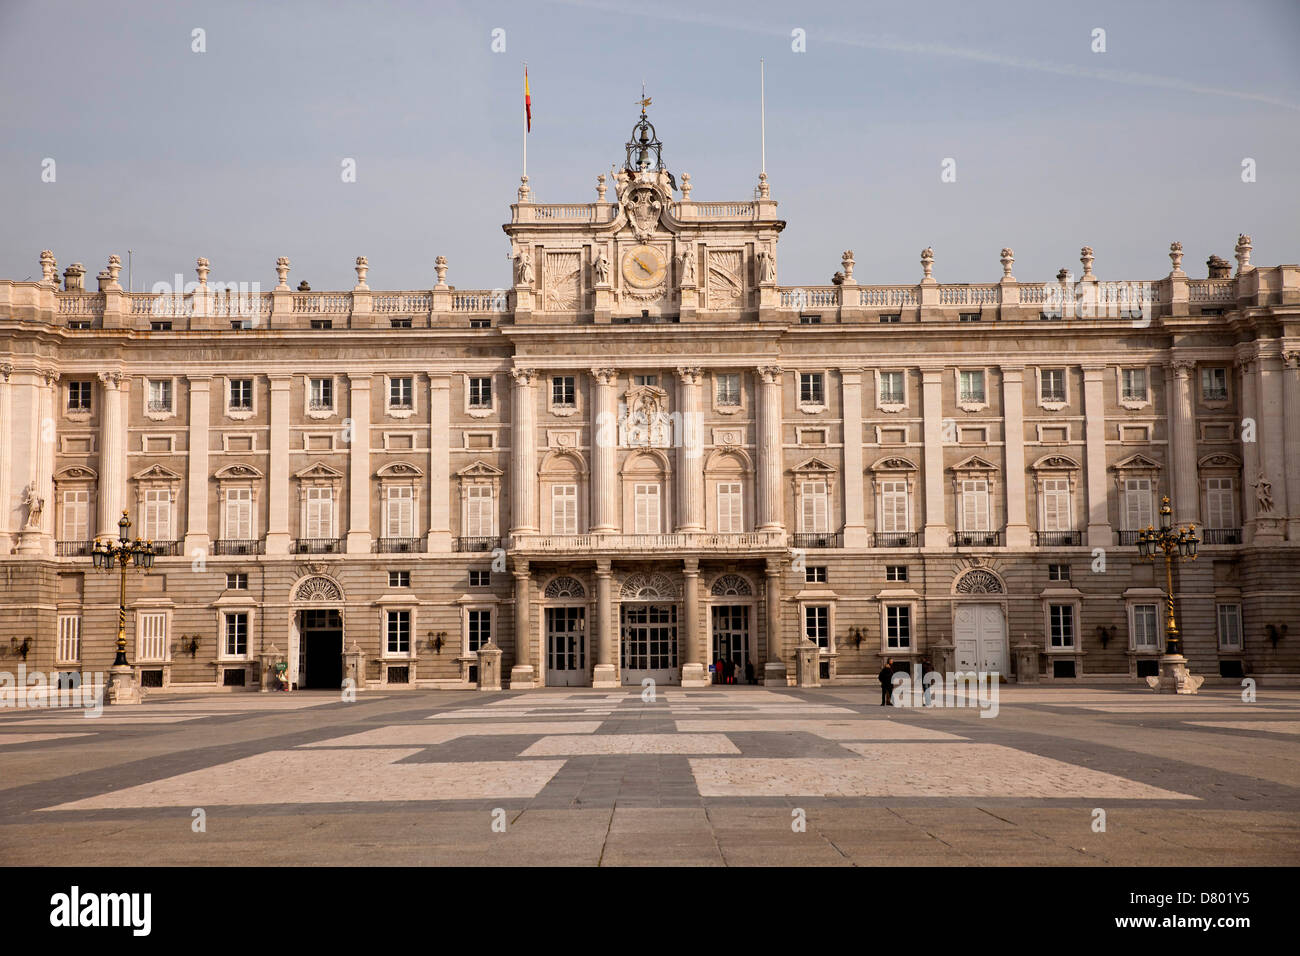 the kings palace Palacio Real and Plaza de la Armeria in Madrid, Spain, Europe Stock Photo